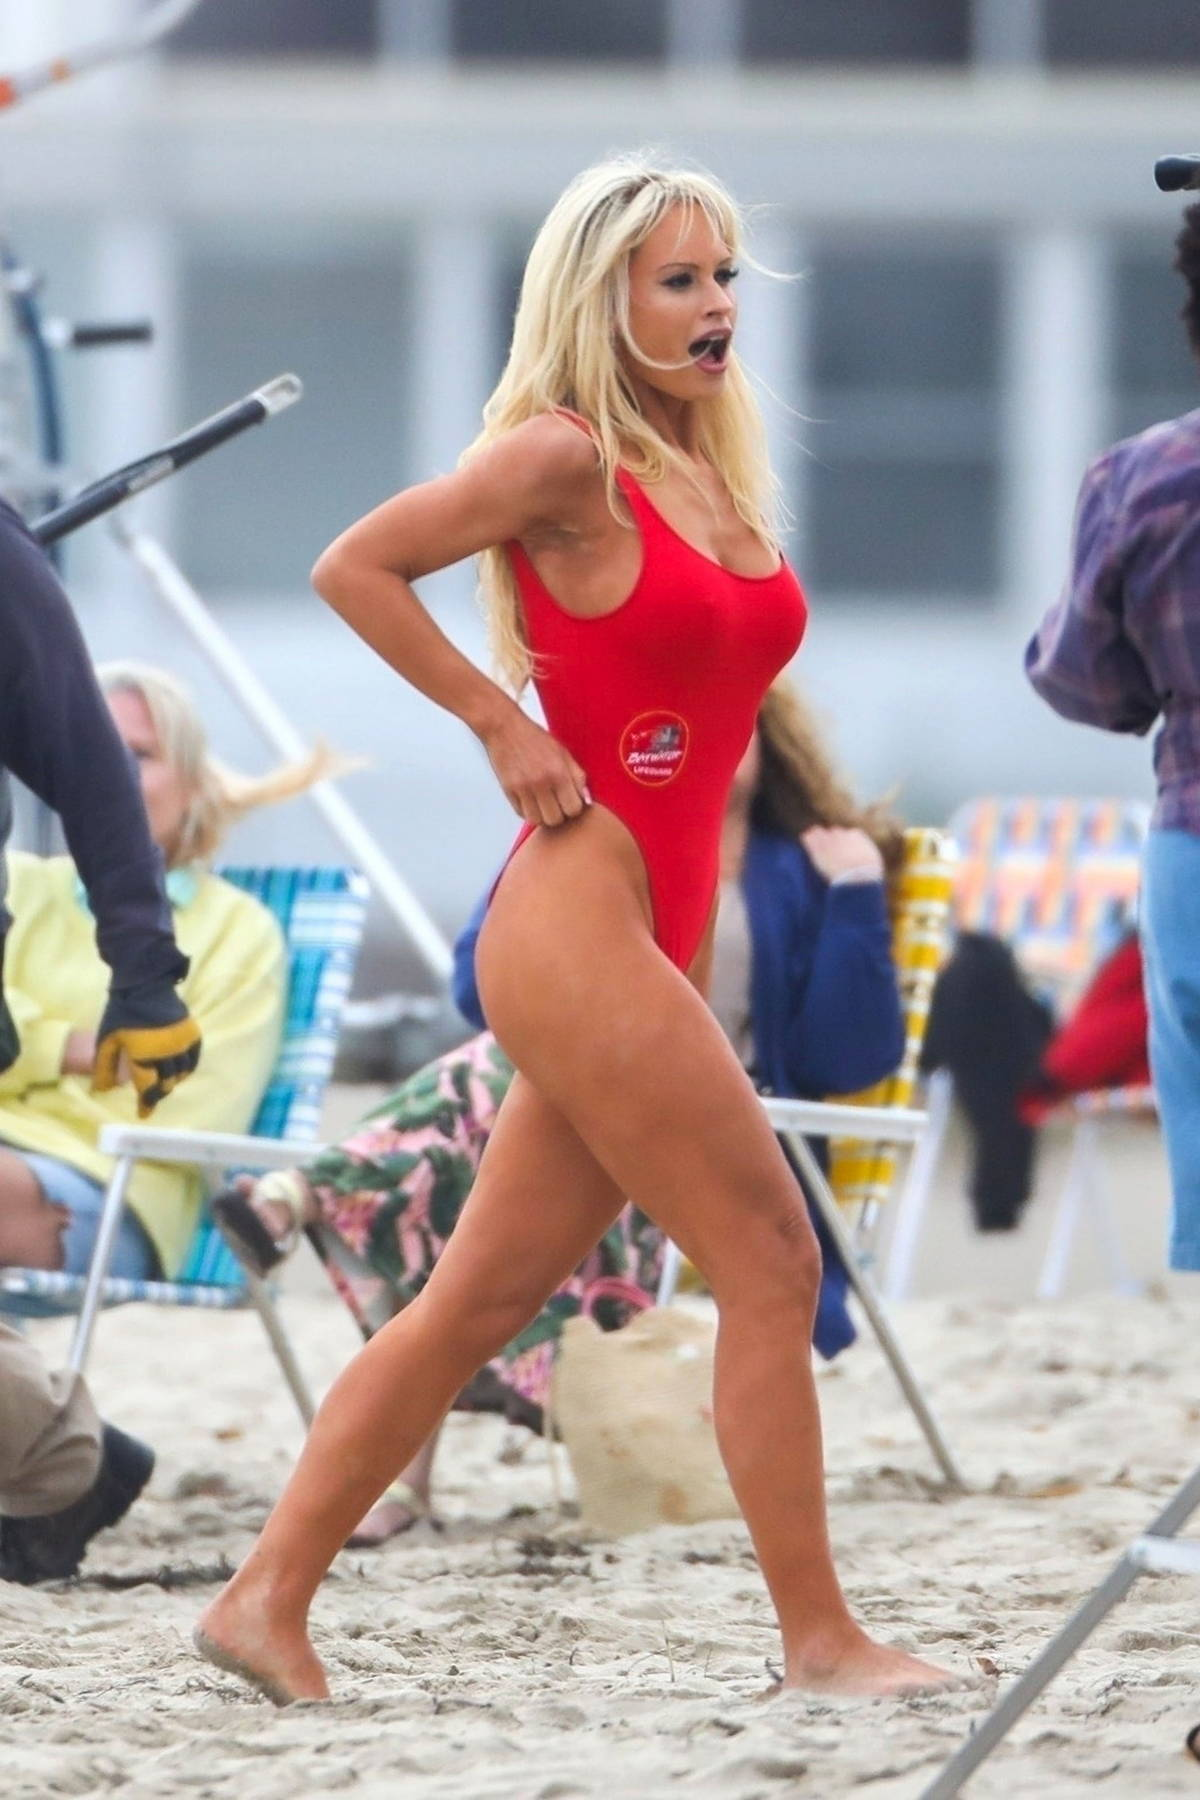 Lily James seen wearing the iconic red swimsuit while filming on the beach for 'Pam and Tommy' in Malibu, California